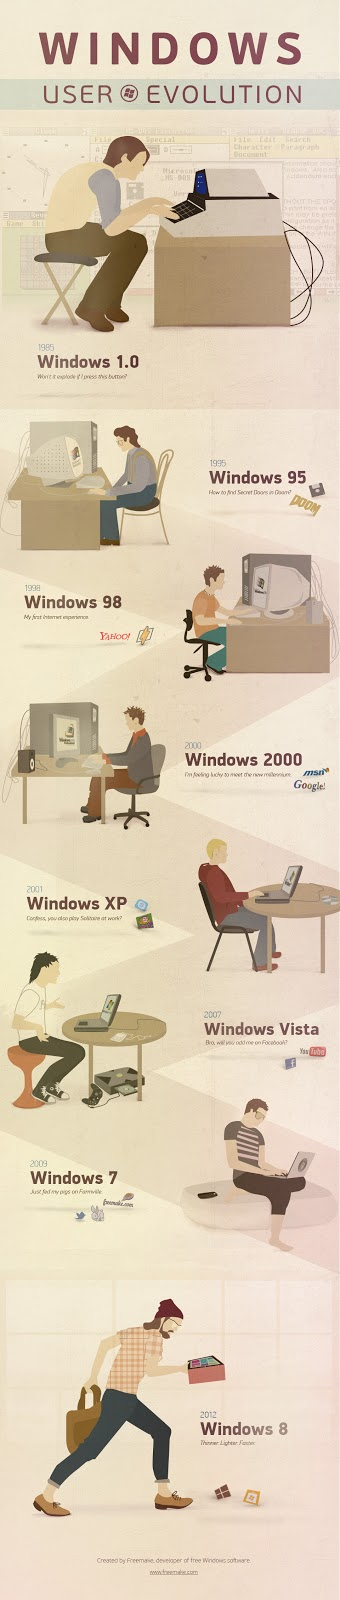 Evolusi Windows OS Dari Masa Ke Masa [infographic]